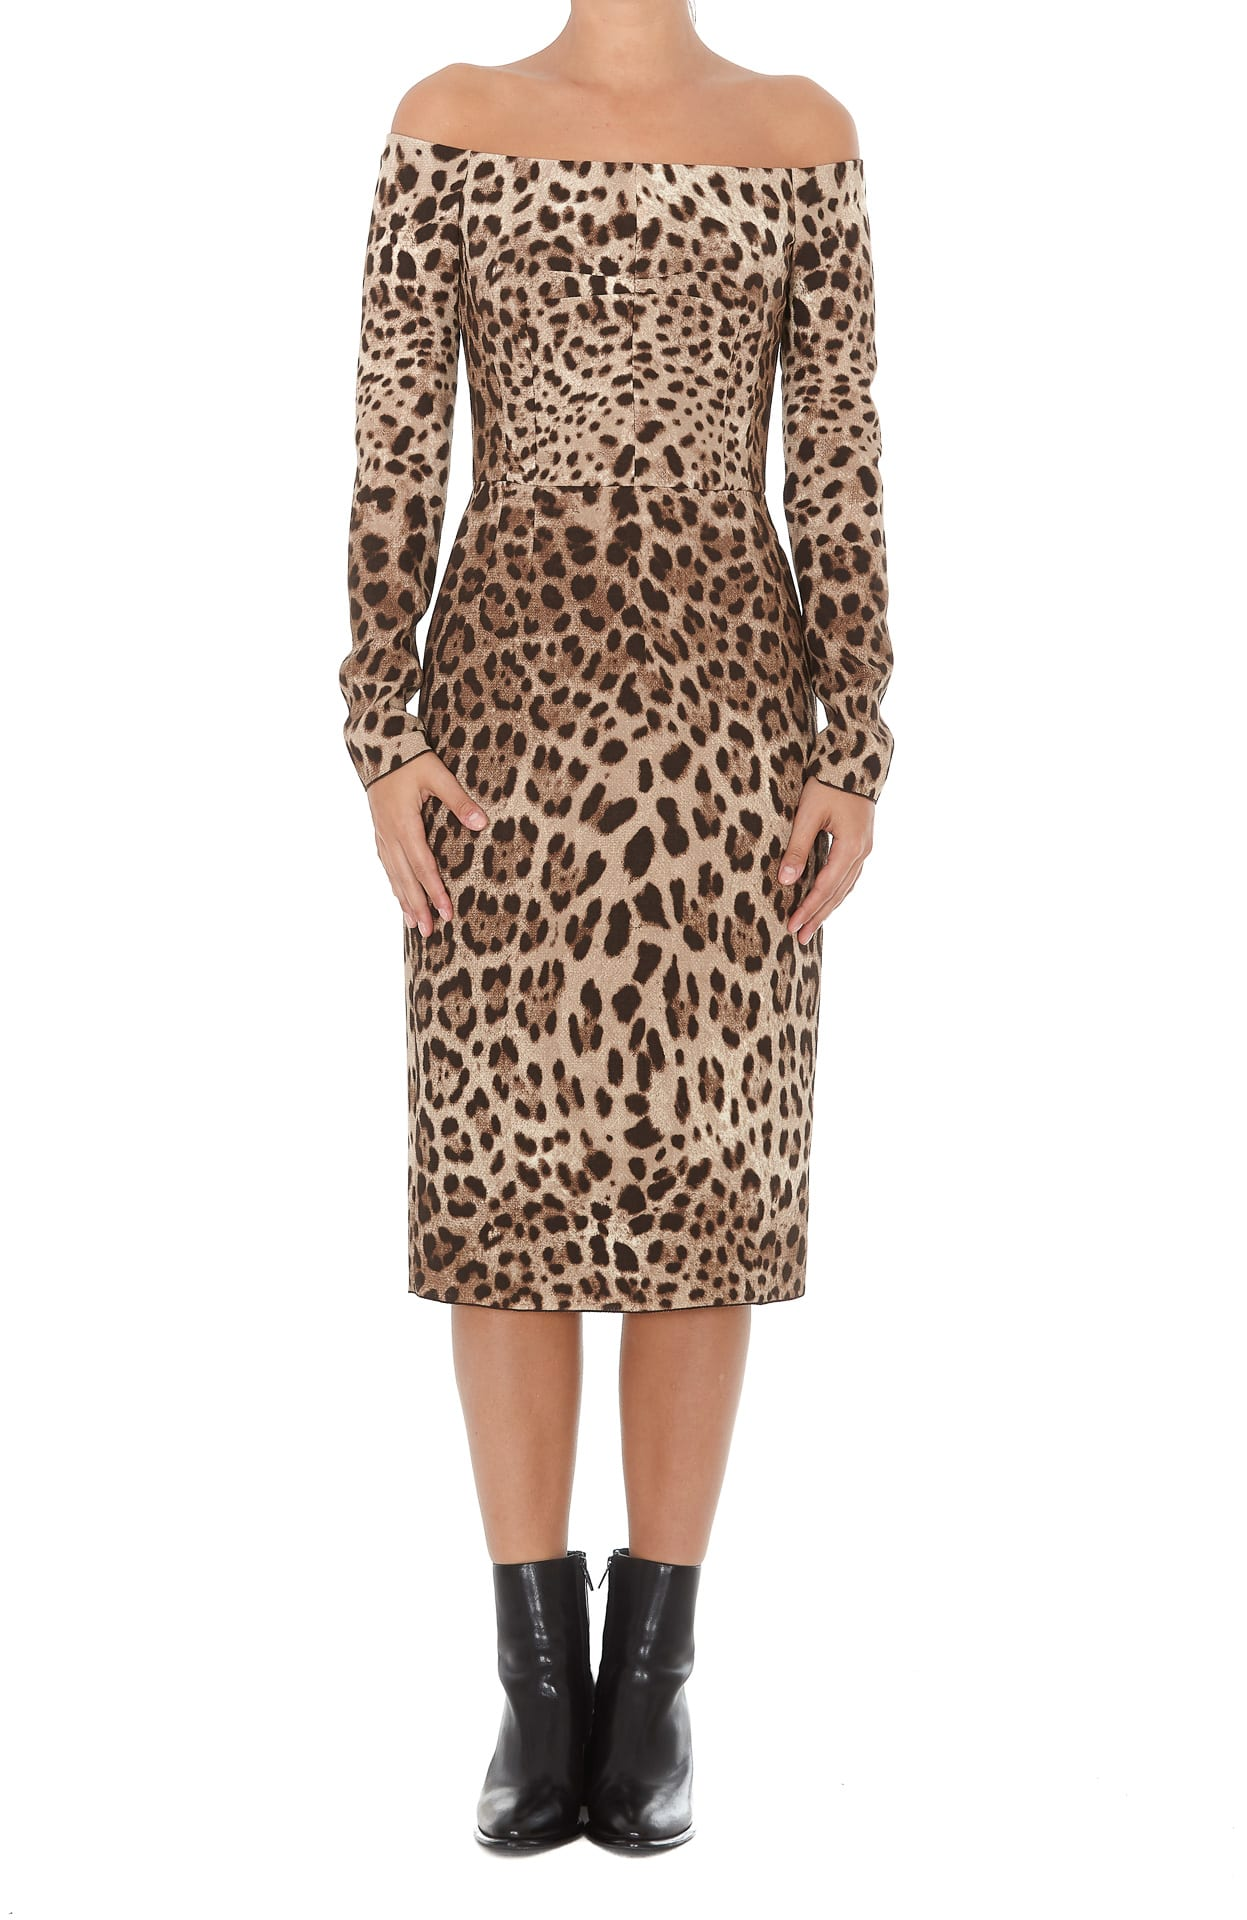 Dolce & Gabbana Animalier Dress